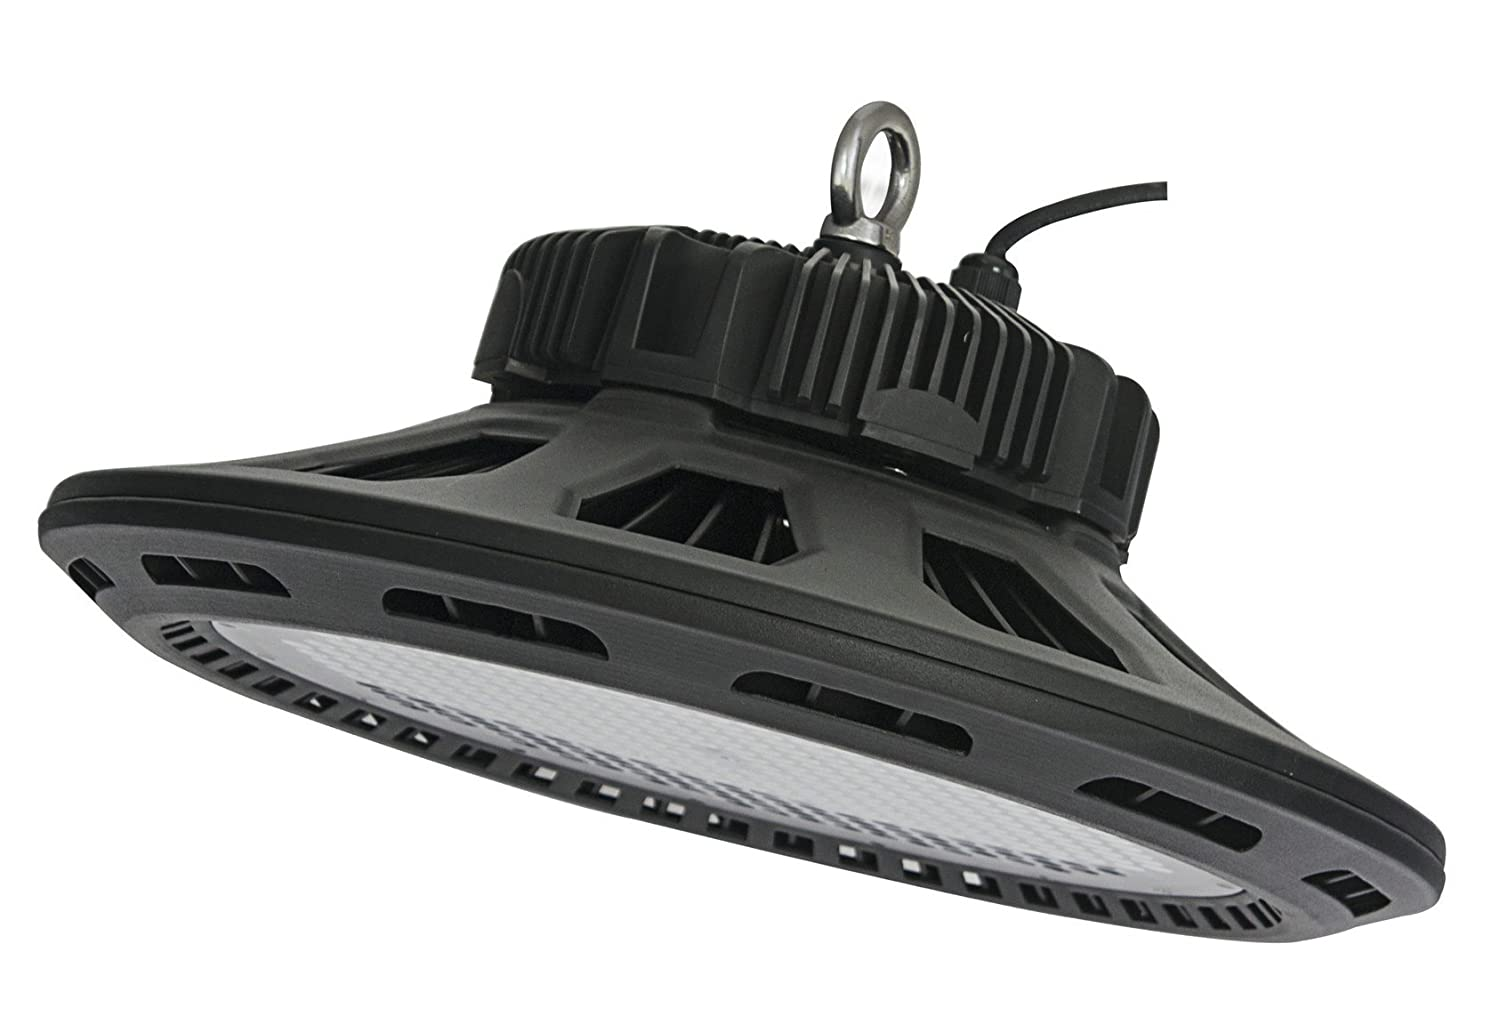 UL Listed 300W HPS//MH Bulbs Equivalent LED High Bay Lights 6000K Super Bright Commercial Lighting 18500lm Waterproof,CoolWhite CY LED 150W UFO LED High Bay Lighting